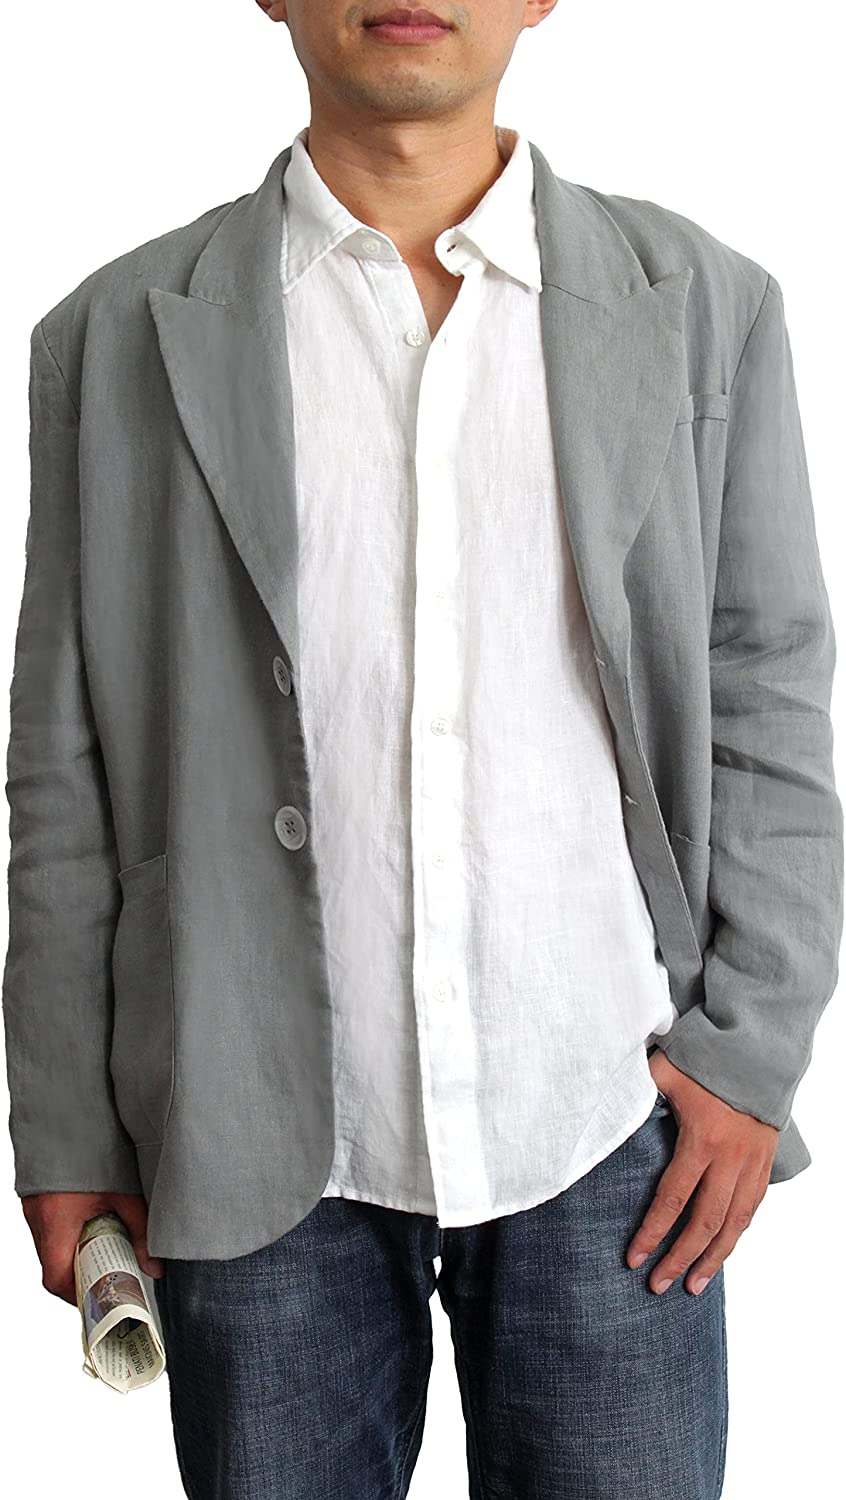 S VICTORY SYMBOL Pure Linen Men Max 49% OFF Award Full Suit S-XXL Casual Jackets